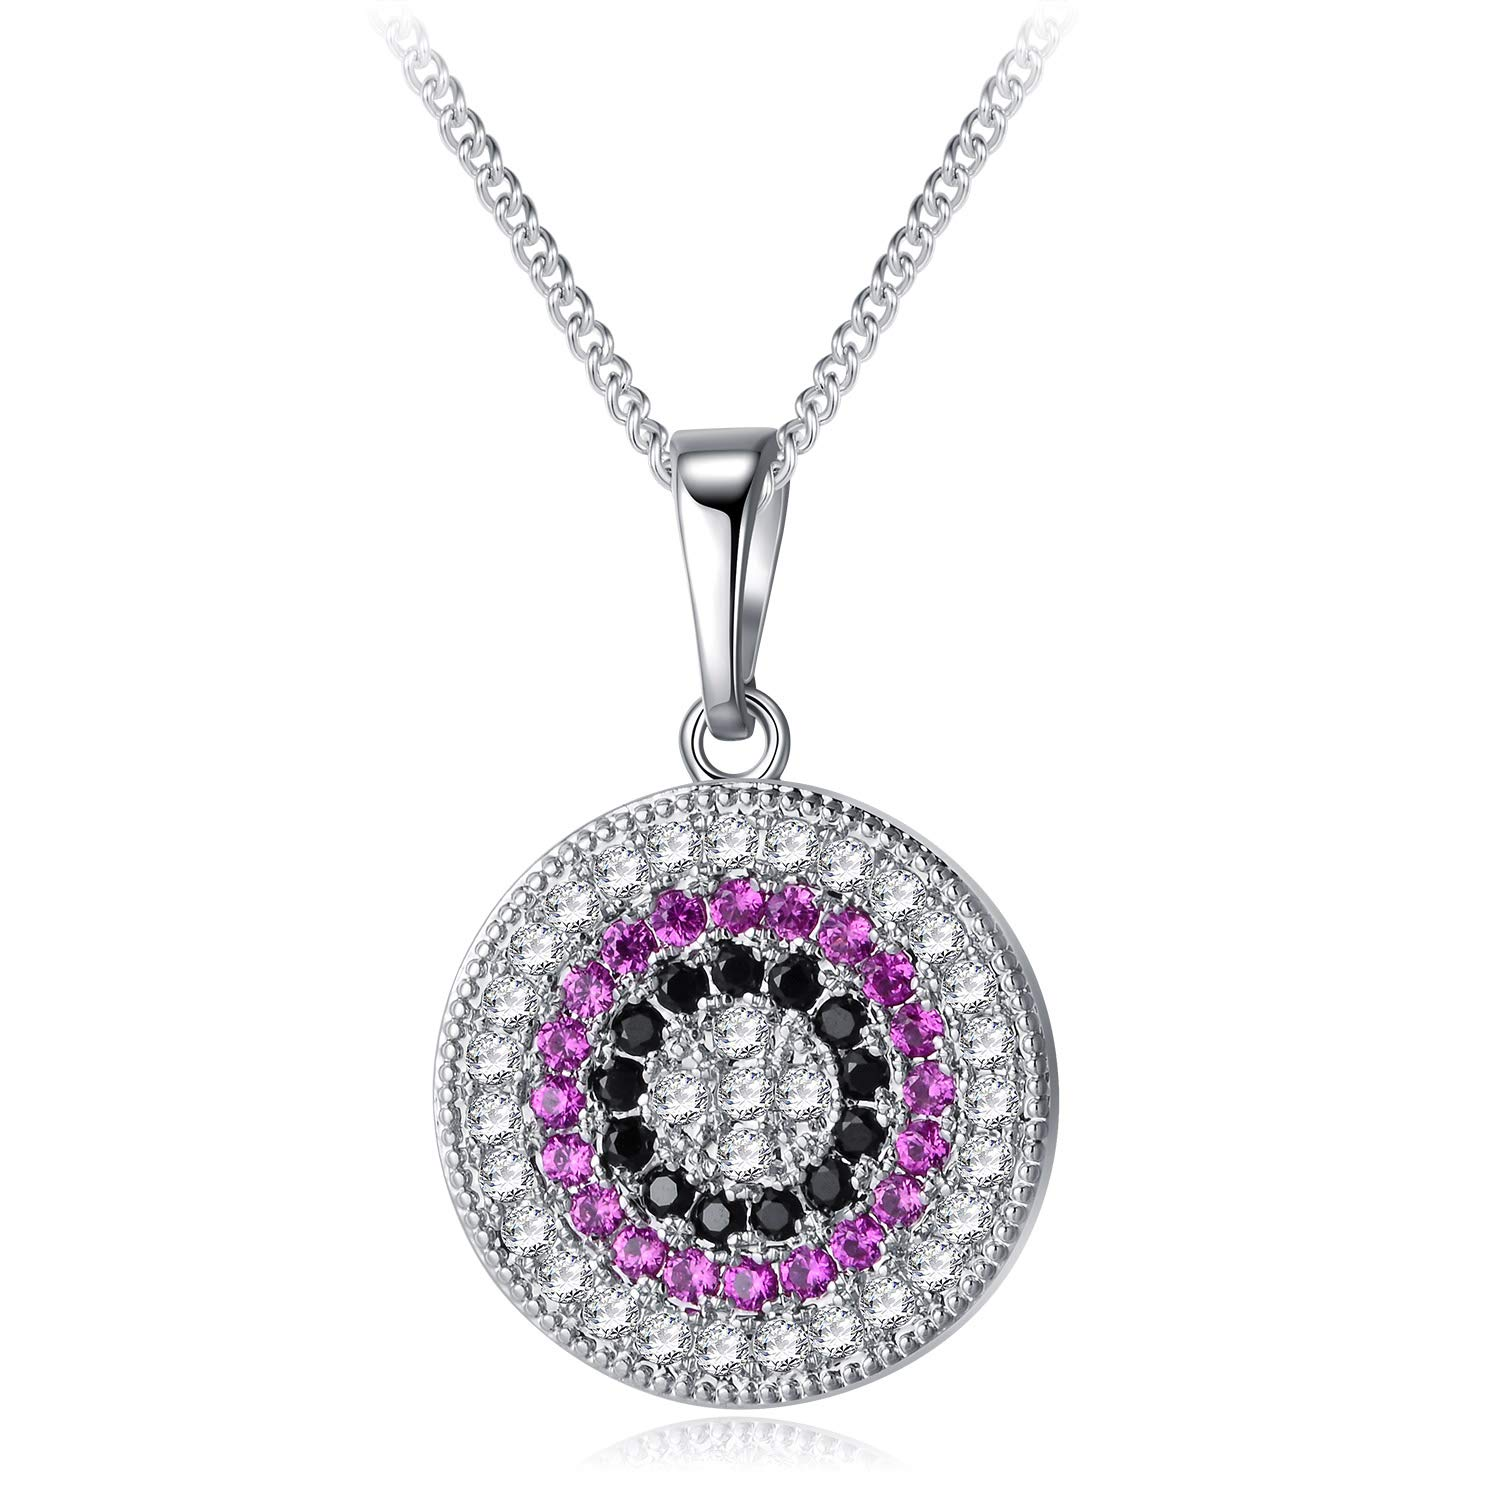 YHLISO Evil Eye Pendant Sparkling Necklace Round Pave Diamond Cubic Zirconia Lucky Charm Disc Necklaces for Women